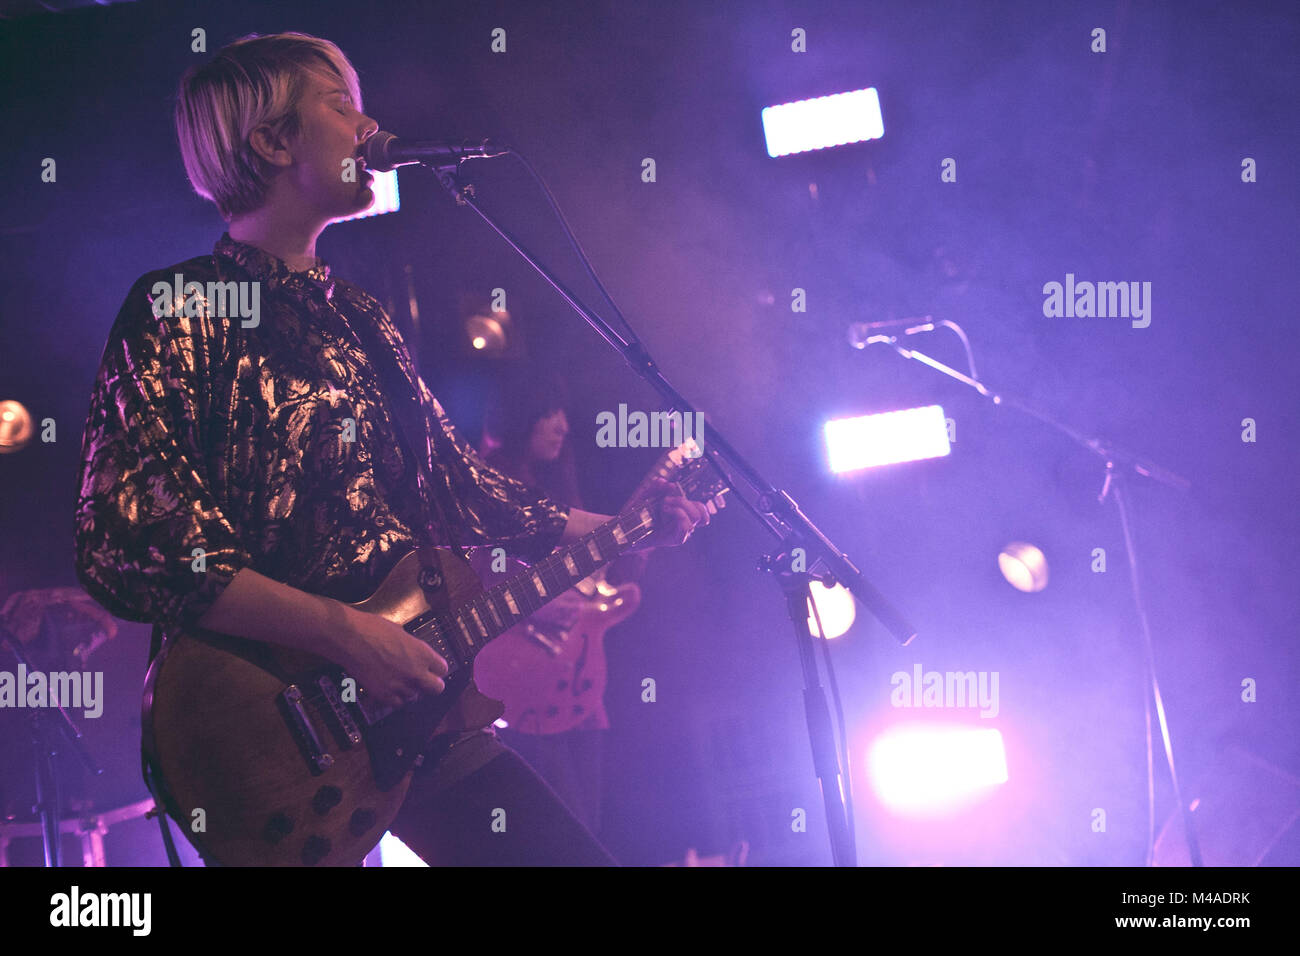 The American Singer Songwriter And Musician Erika M Anderson Is Stock Photo Alamy